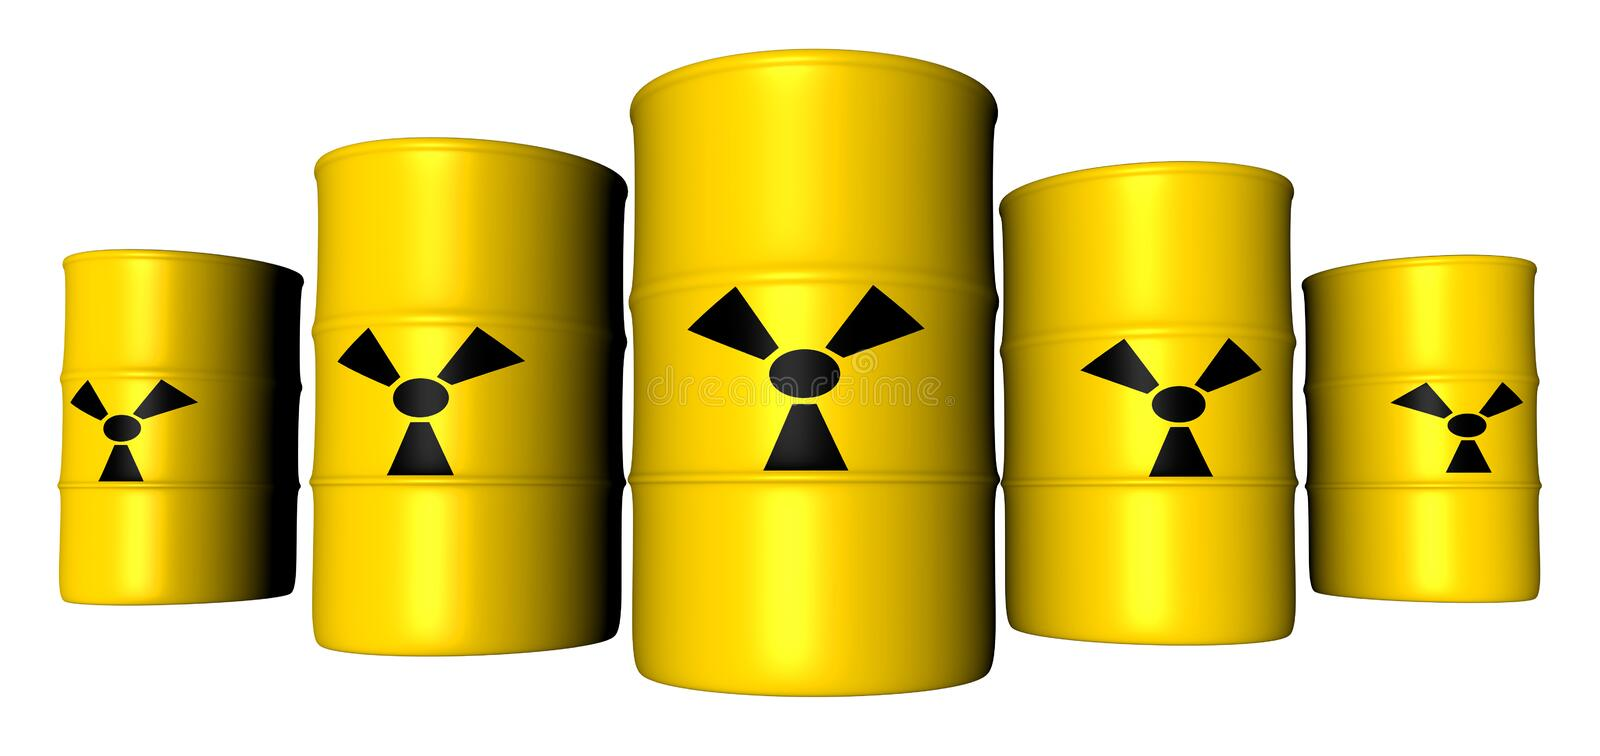 Radioactive Barrels royalty free illustration